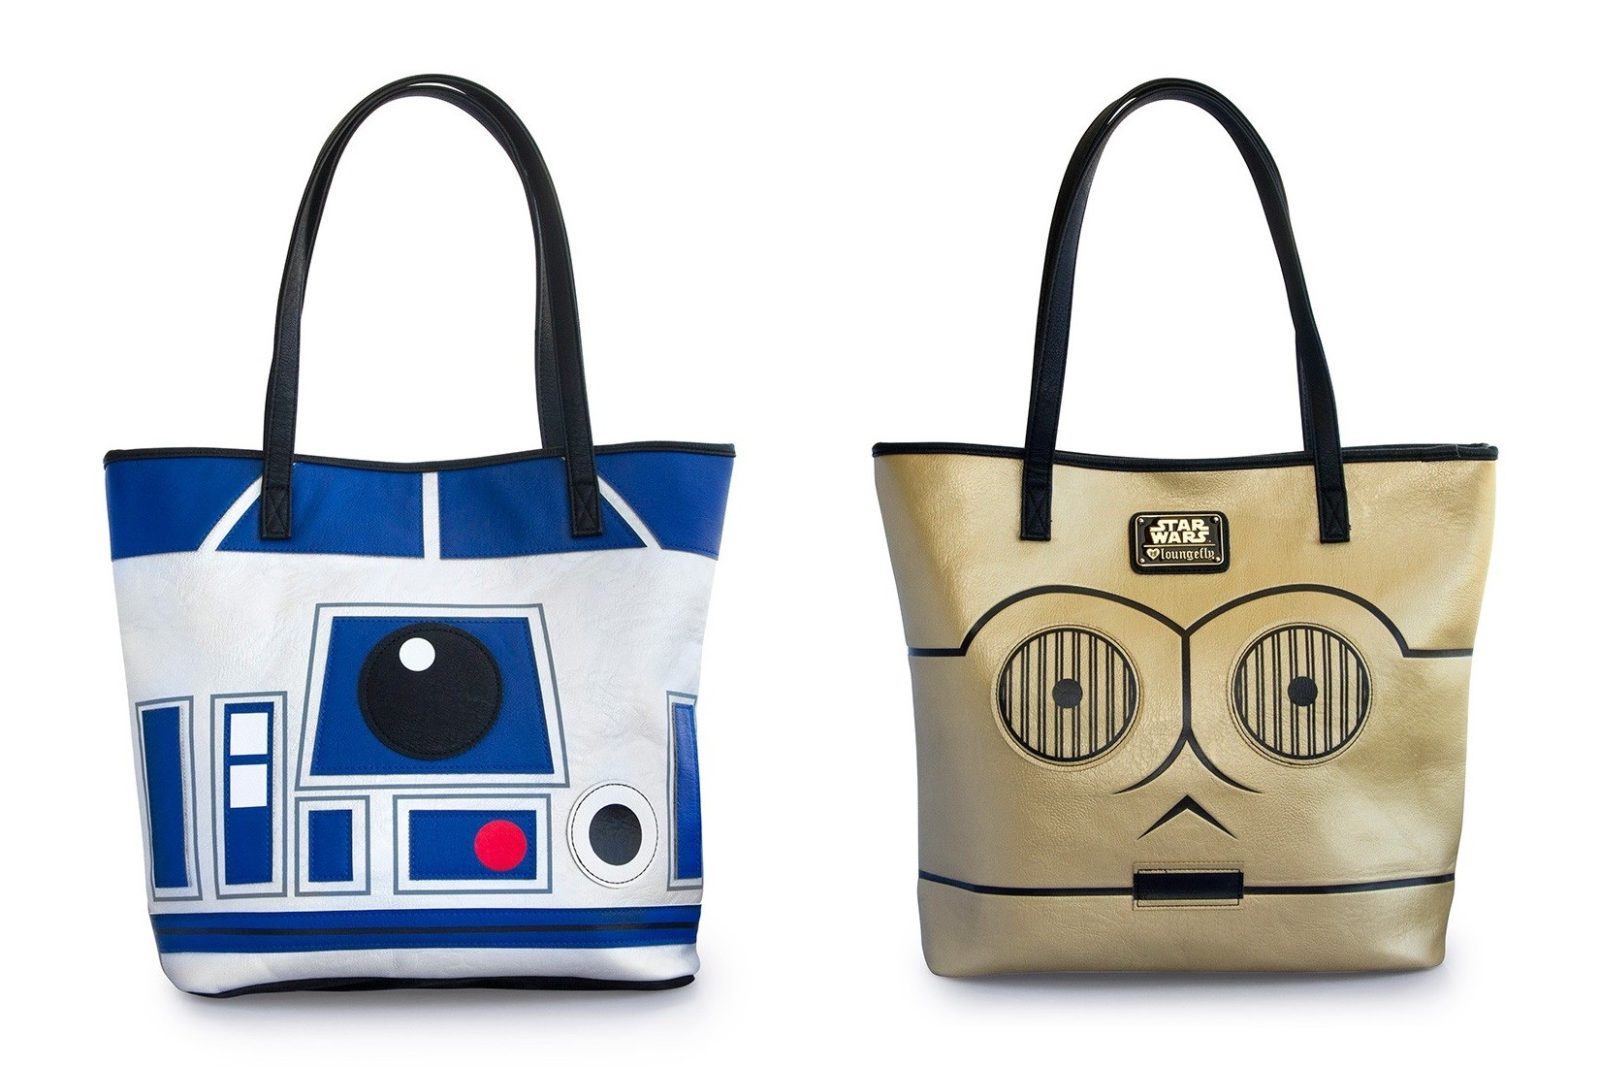 New Loungefly reversible tote bag